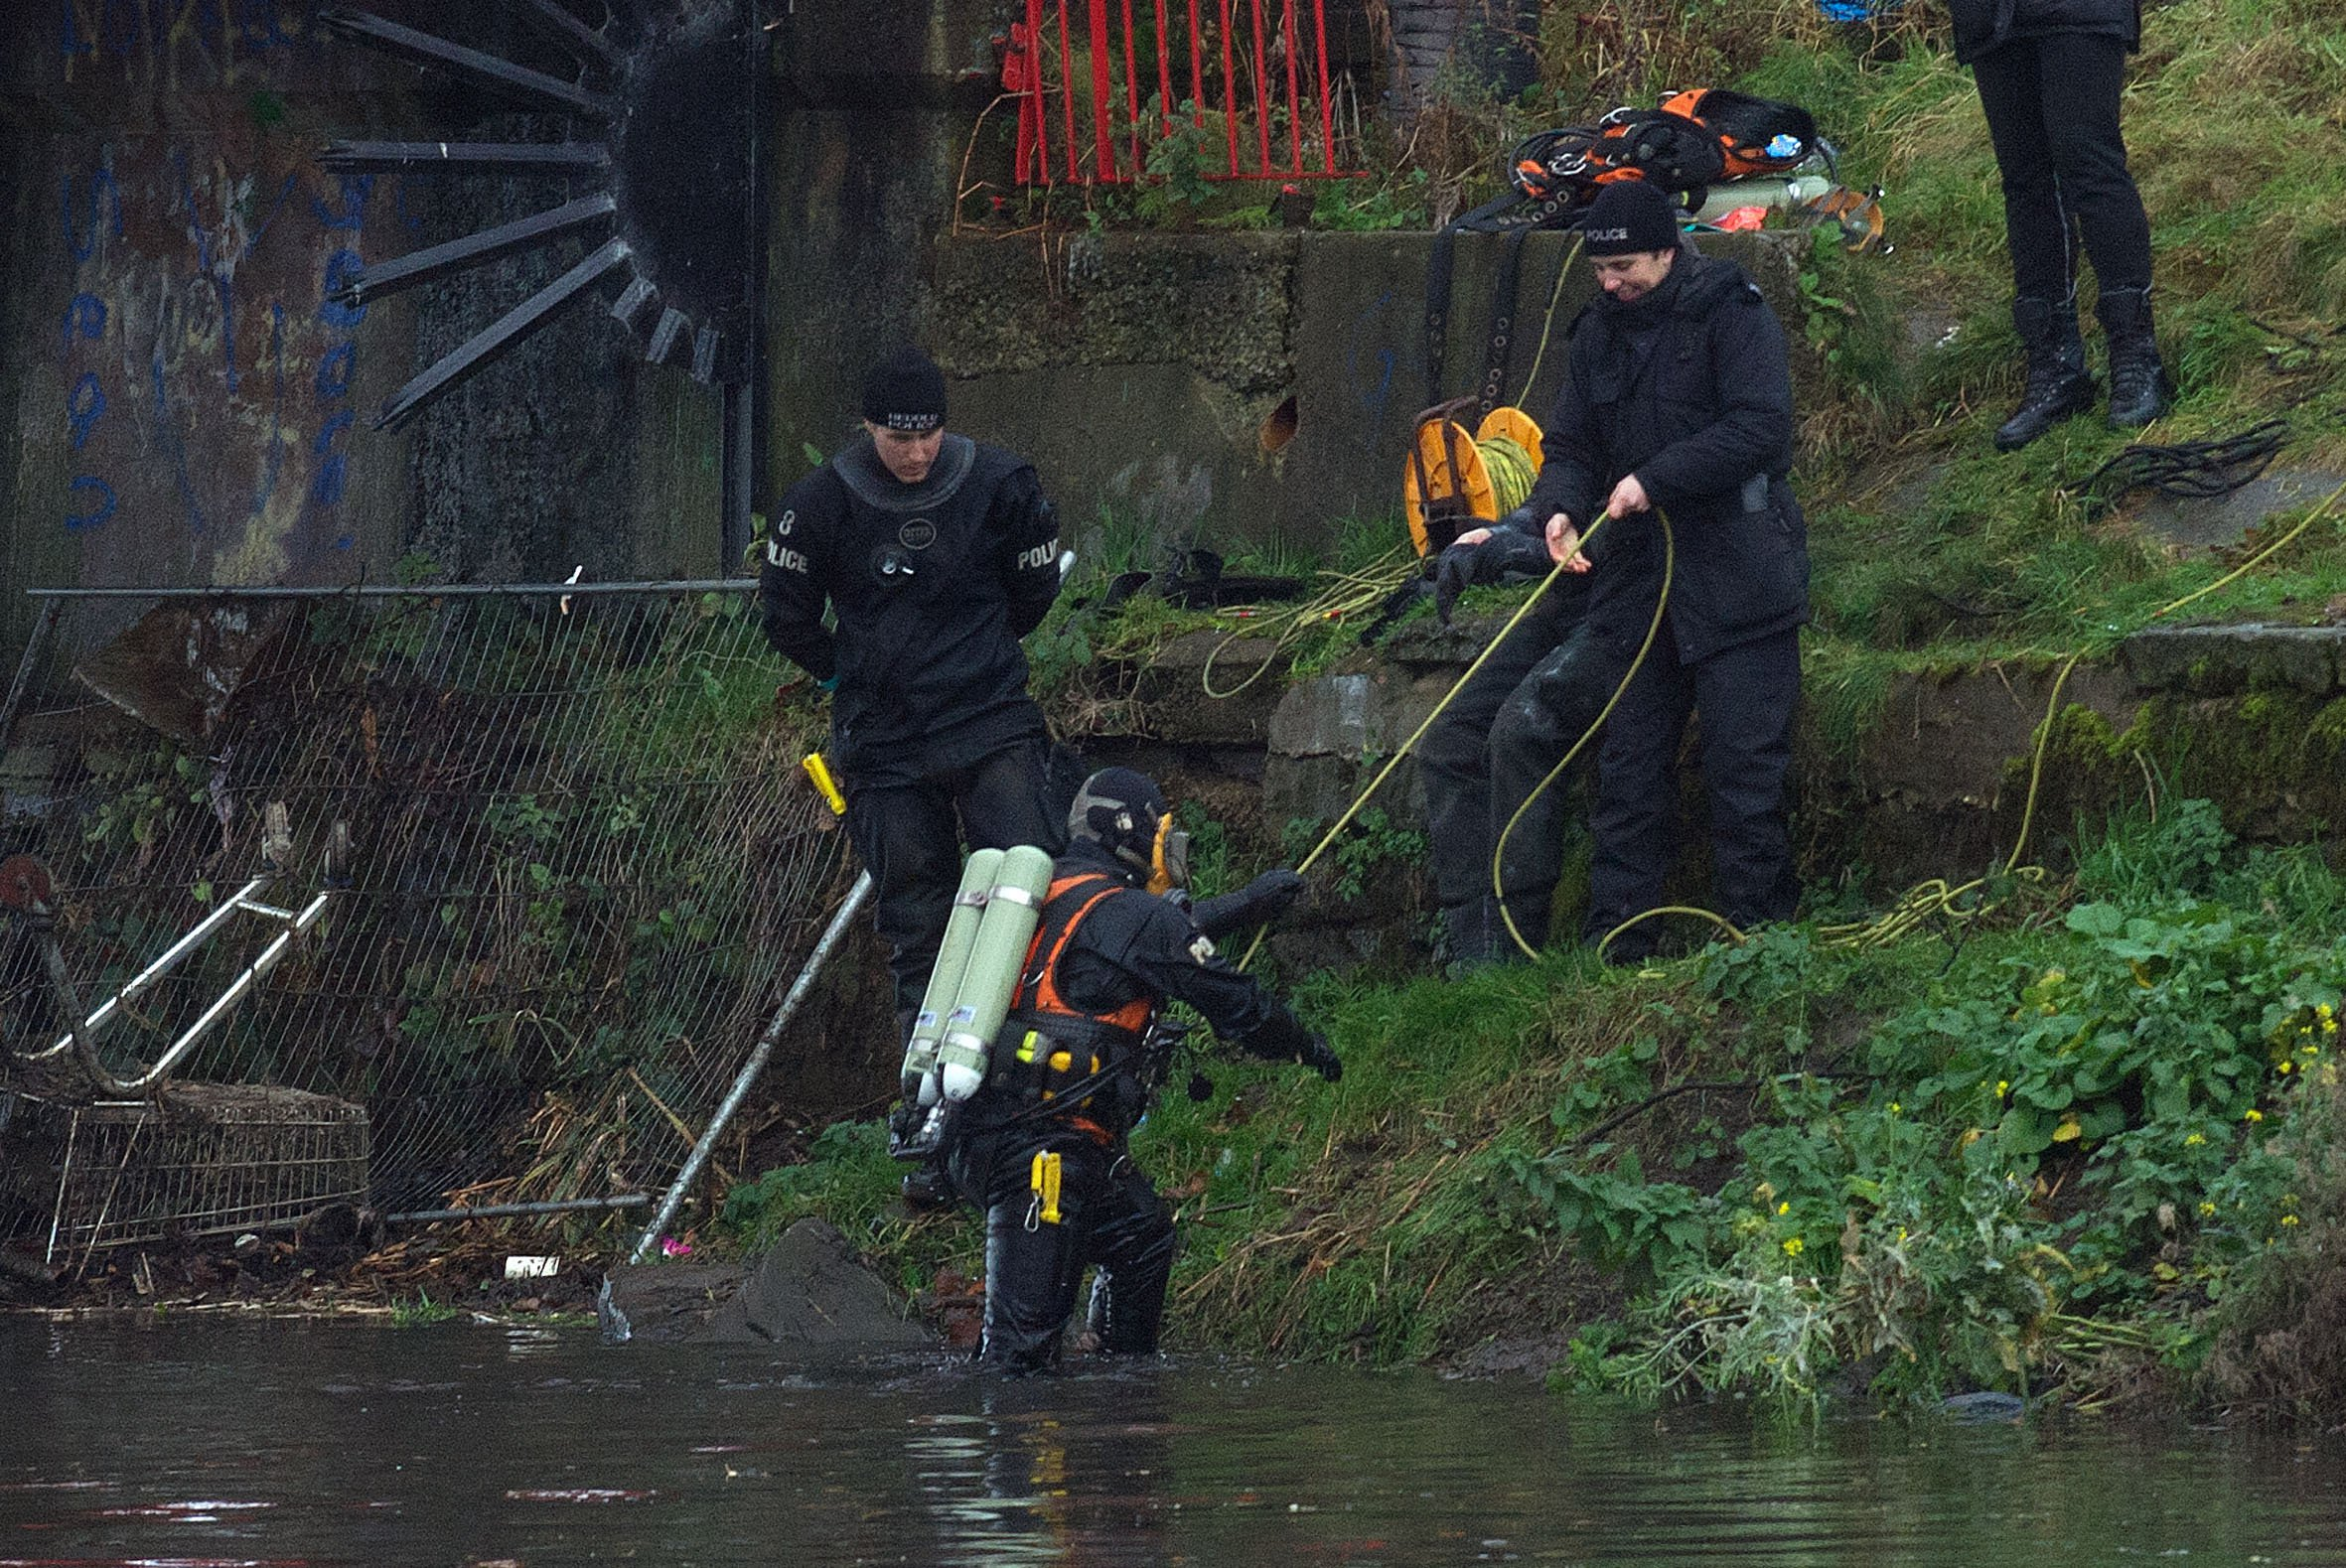 The scene in the river Irwell where some body parts have been found police divers are in the water - A human leg found in the River Irwell is that of a missing Marie Scott it has been confirmed. Mum-of-two Marie, 58, hadn't been seen since she walked out of the family home in Hale , near Altrincham in Trafford, just before last Christmas.The remains were found in the River at the end of last month when they were spotted by a passer-by who raised the alarm. Specialist underwater teams spent hours combing an area of the river near the Jubilee Bridge, off Britannia Street. And following forensic examination it was found to be a human leg, GMP said today. DNA testing has confirmed that the leg belongs to Marie , who was reported missing from her home in Hale on Monday 18 December 2017.